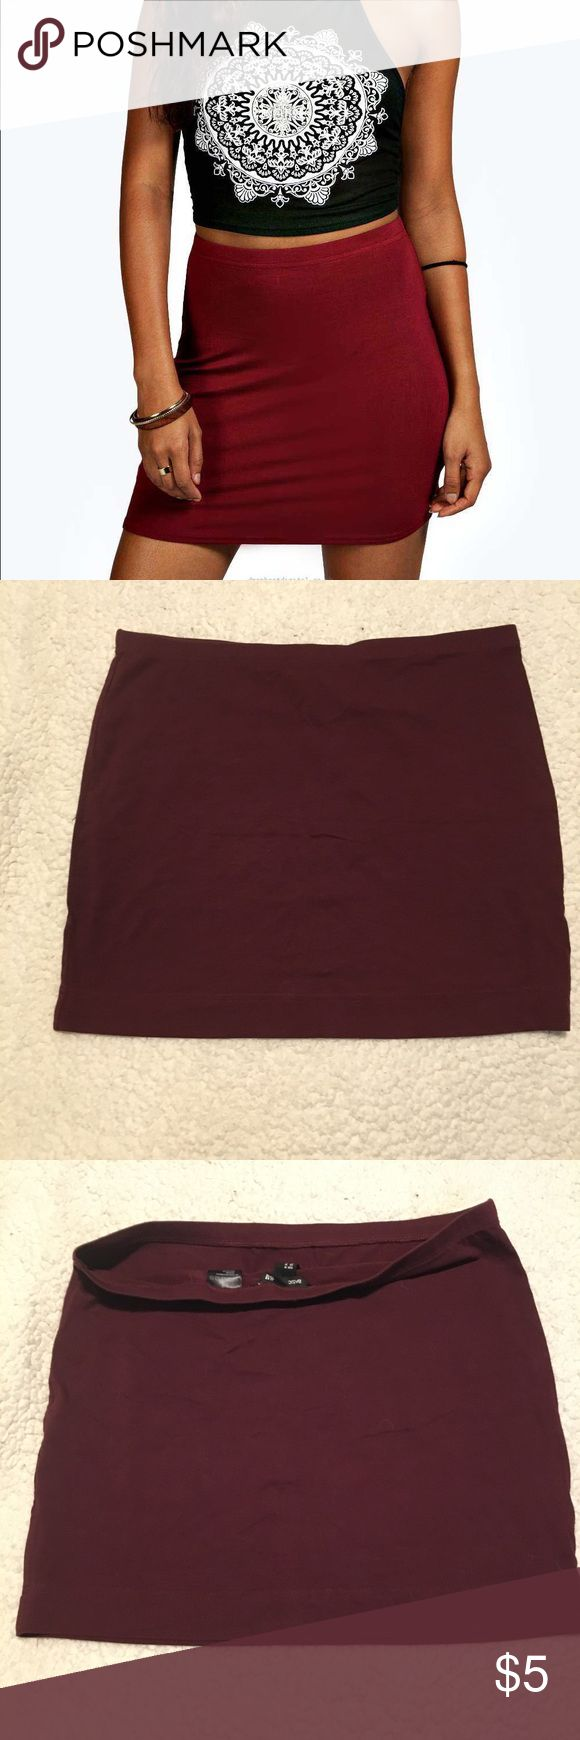 ⭐️4 for $15⭐️ H&M Basic Jersey Mini Skirt Sz Med H&M Basic Jersey Mini Skirt Sz Med  In good condition, worn once No holes or stains Size: medium Color: burgundy  Bundle up with other sale items marked 4/$15 and save! H&M Skirts Mini